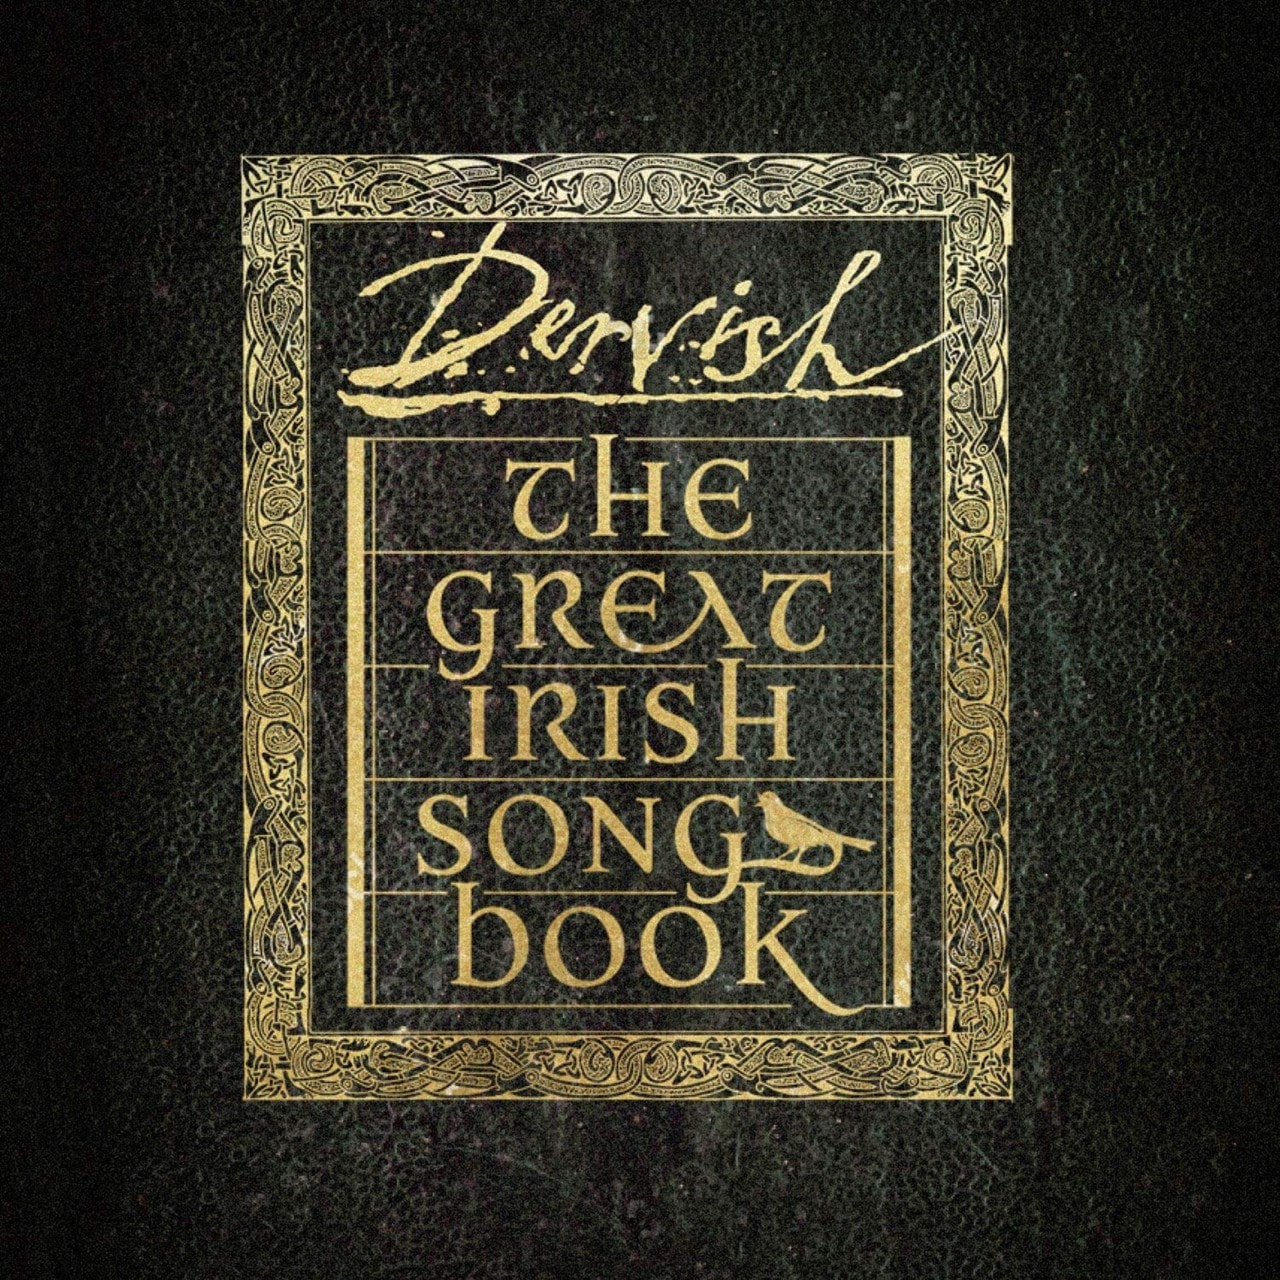 The Great Irish Songbook - 1